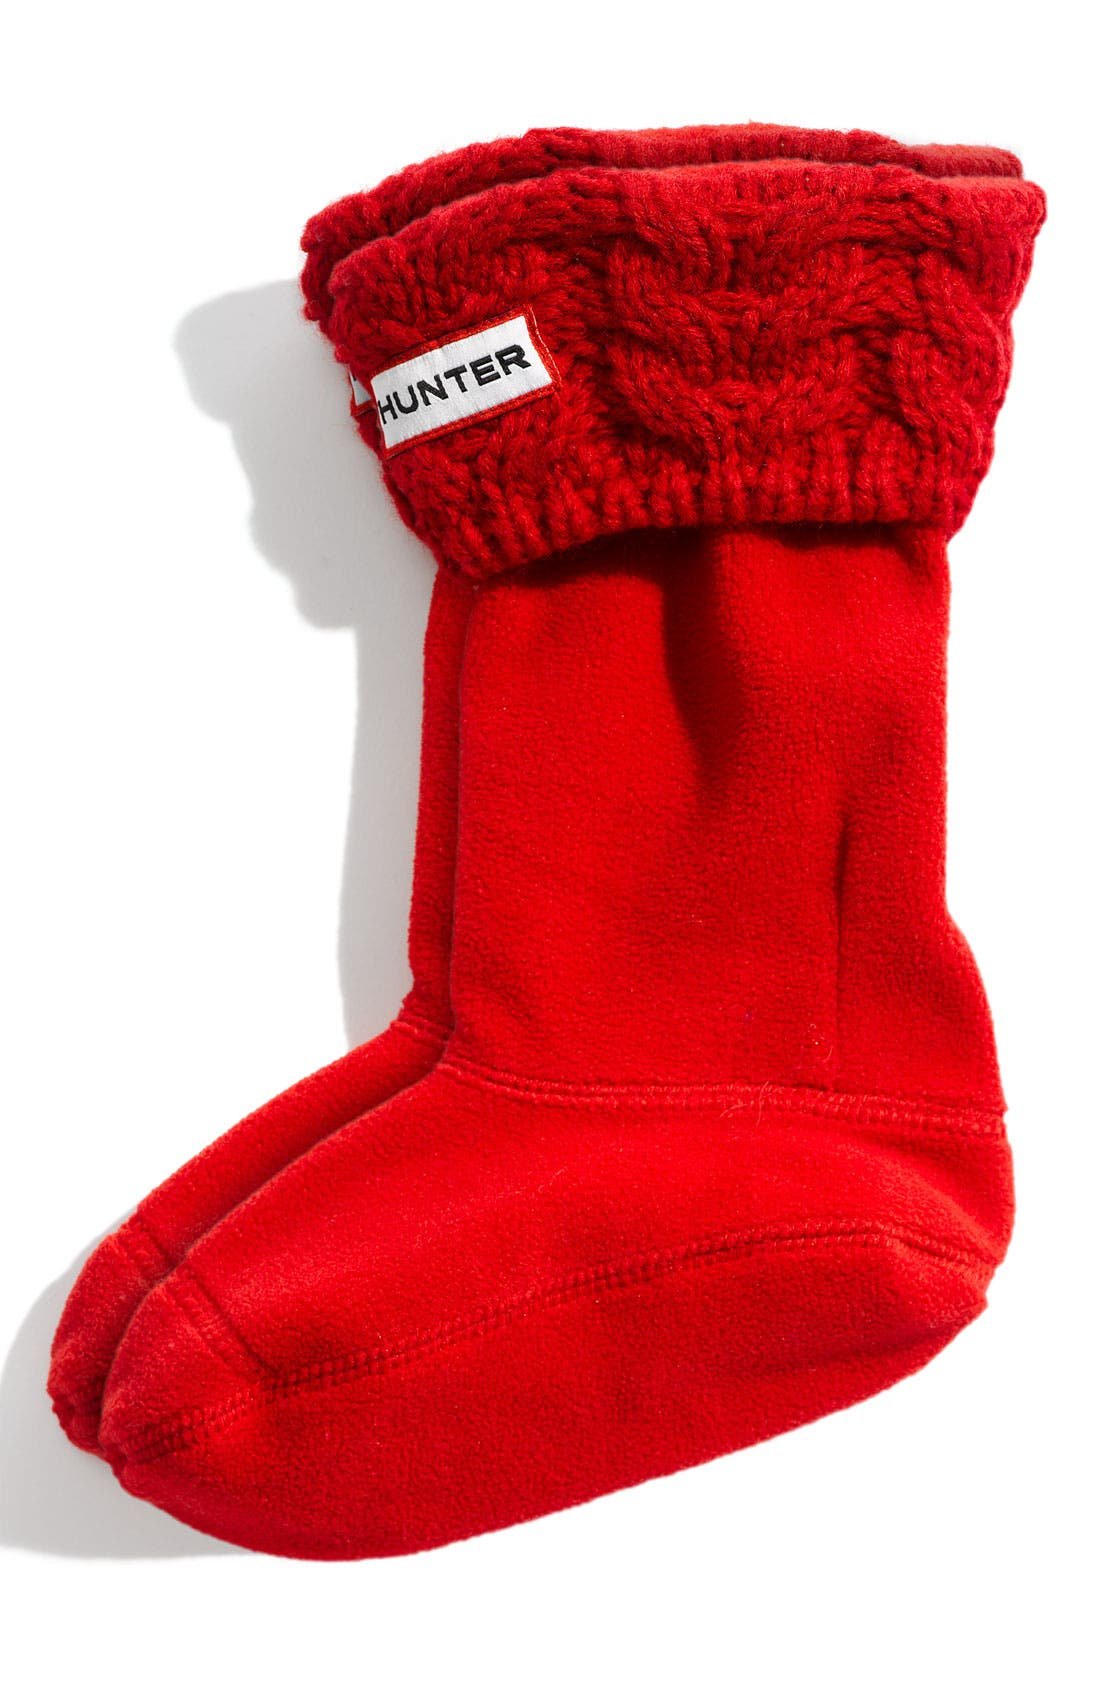 Main Image - Hunter 'Chunky' Cabled Cuff Socks (Toddler, Little Kid & Big Kid)